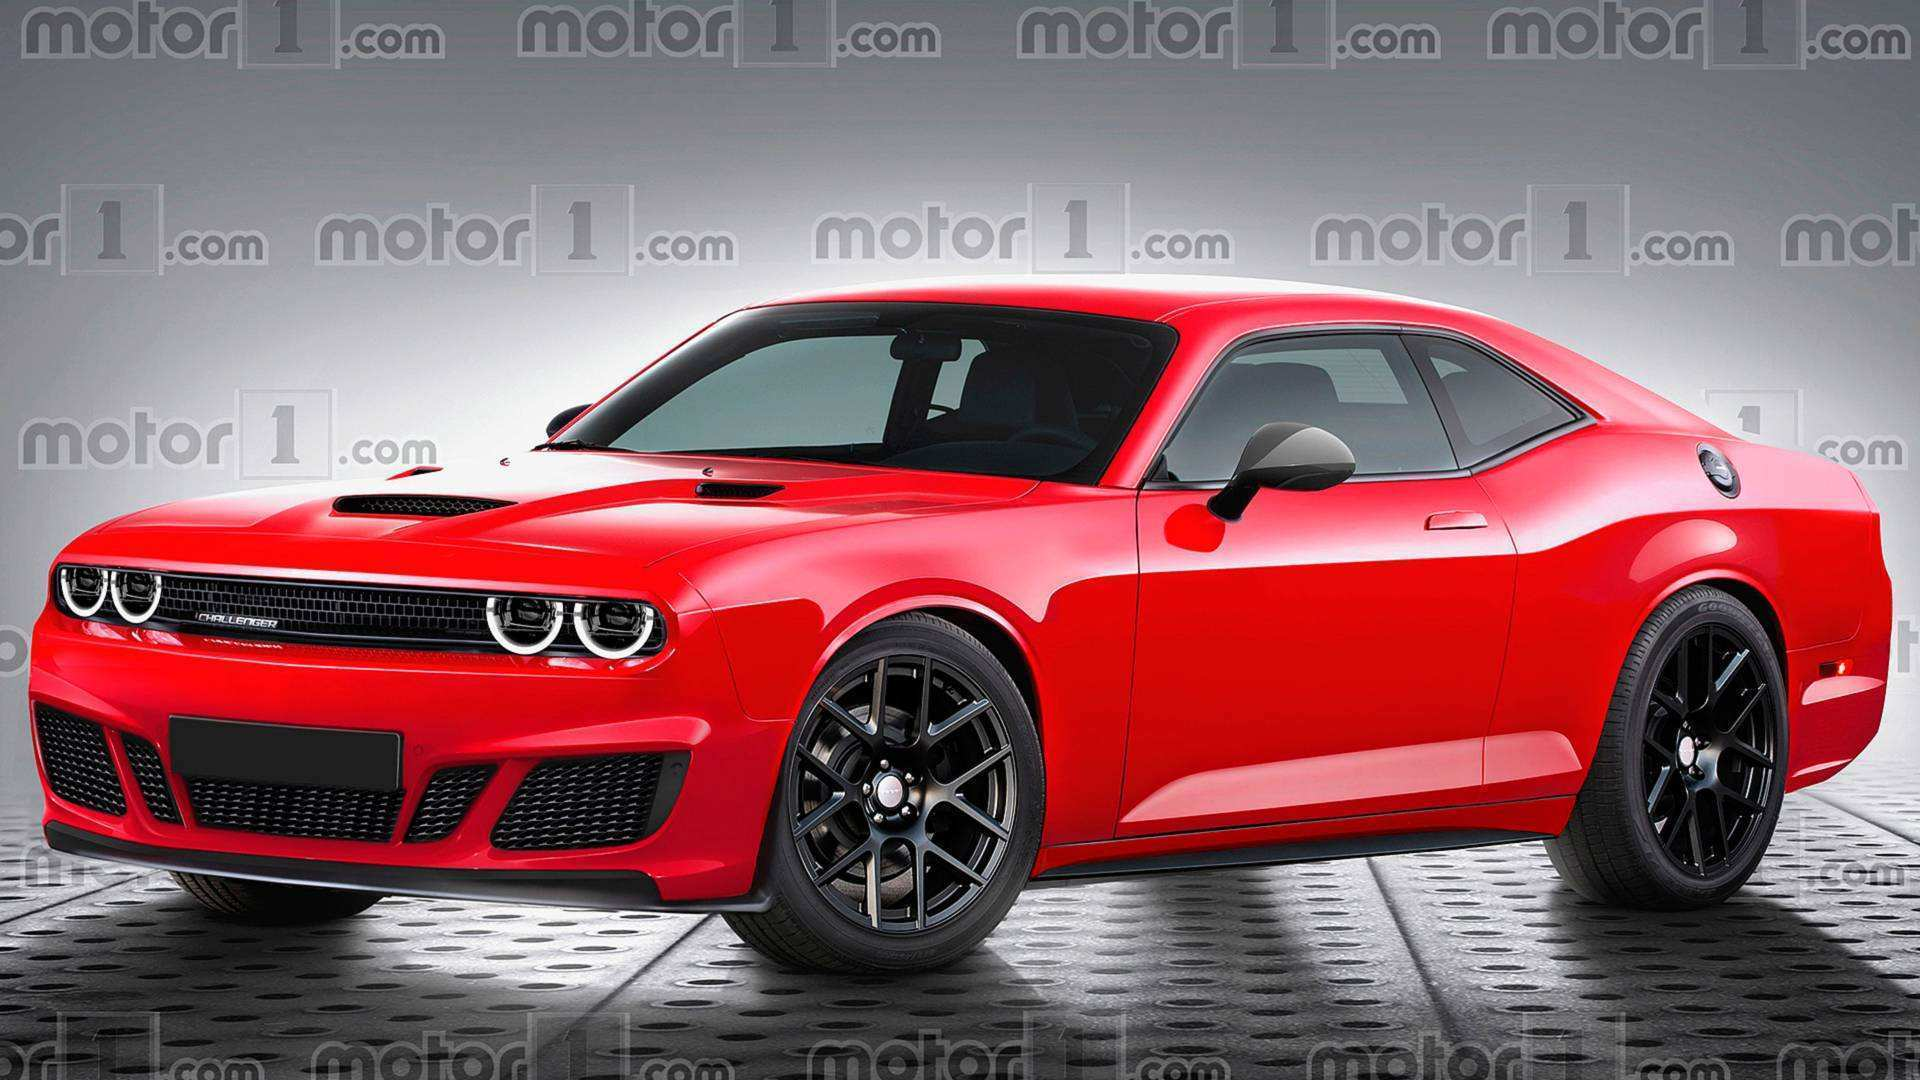 69 The Best 2020 Dodge Charger Reviews